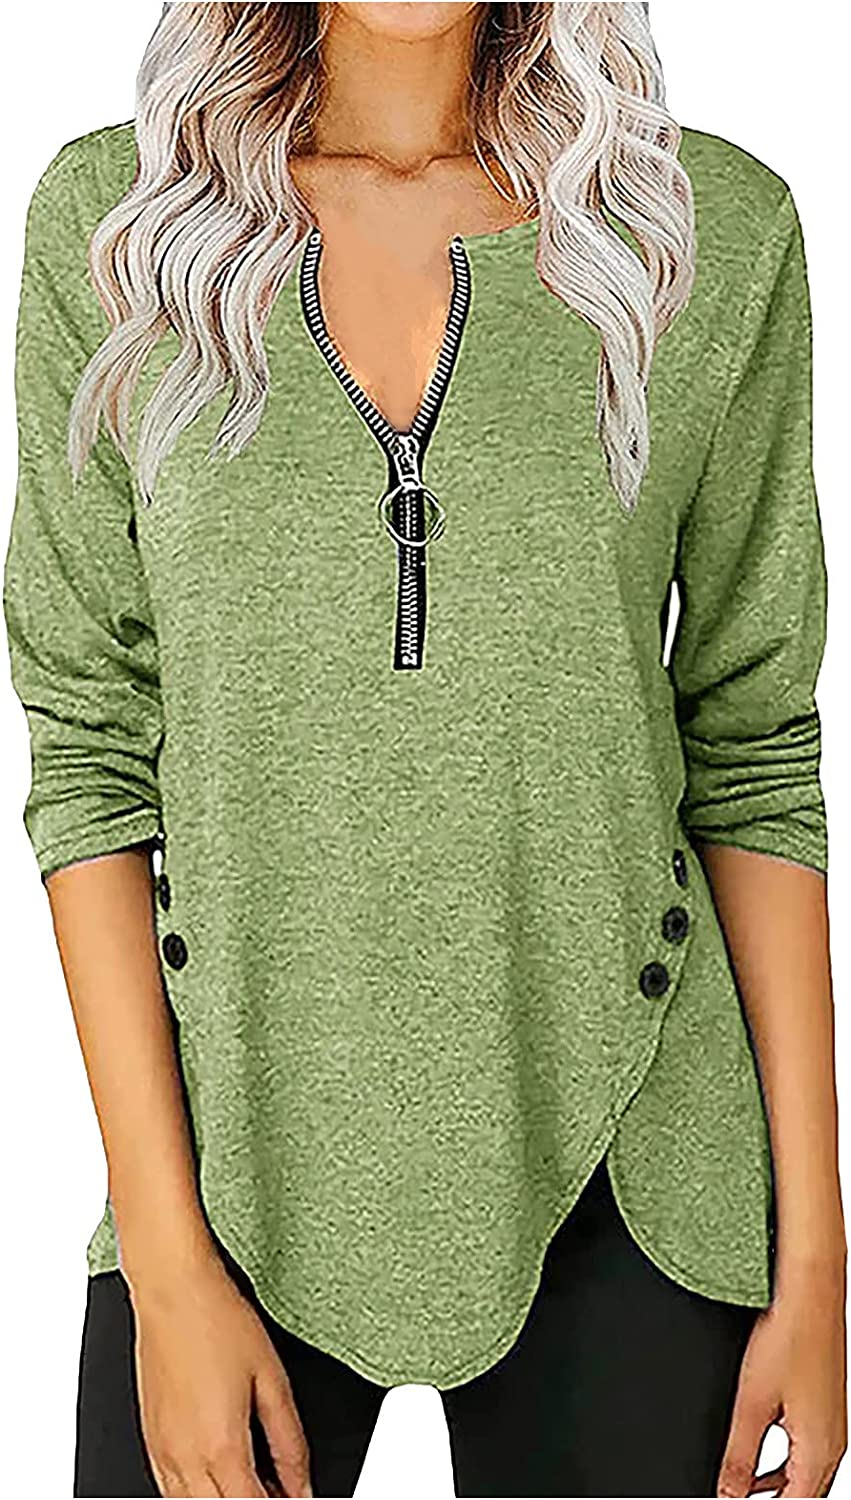 VonVonCo Pullover Sweaters for Women Pure Casual Zipper Long-Sleeved Sweatshirts V-Neck Button T-Shirt Top